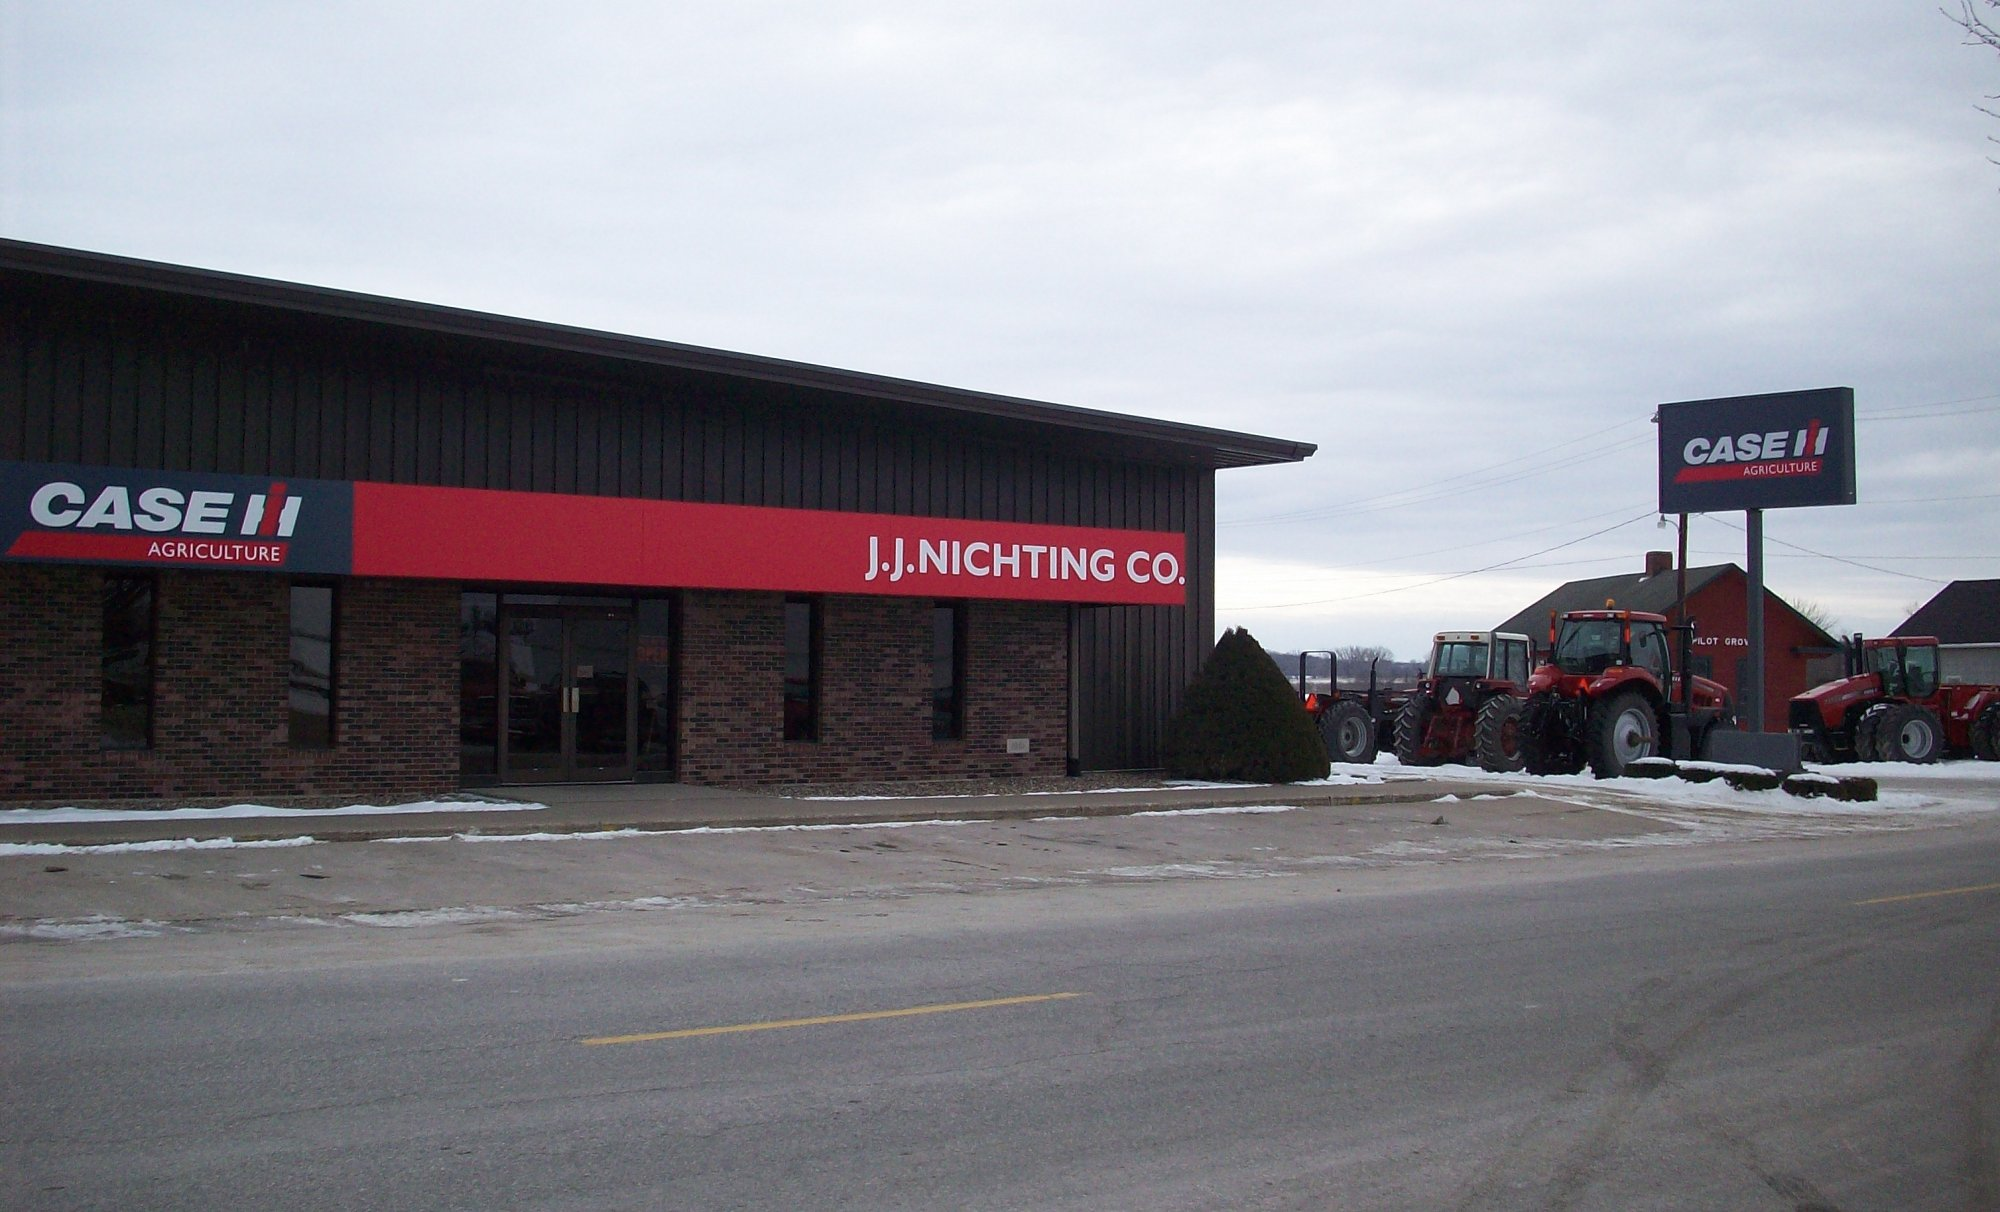 J. J. Nichting Co.